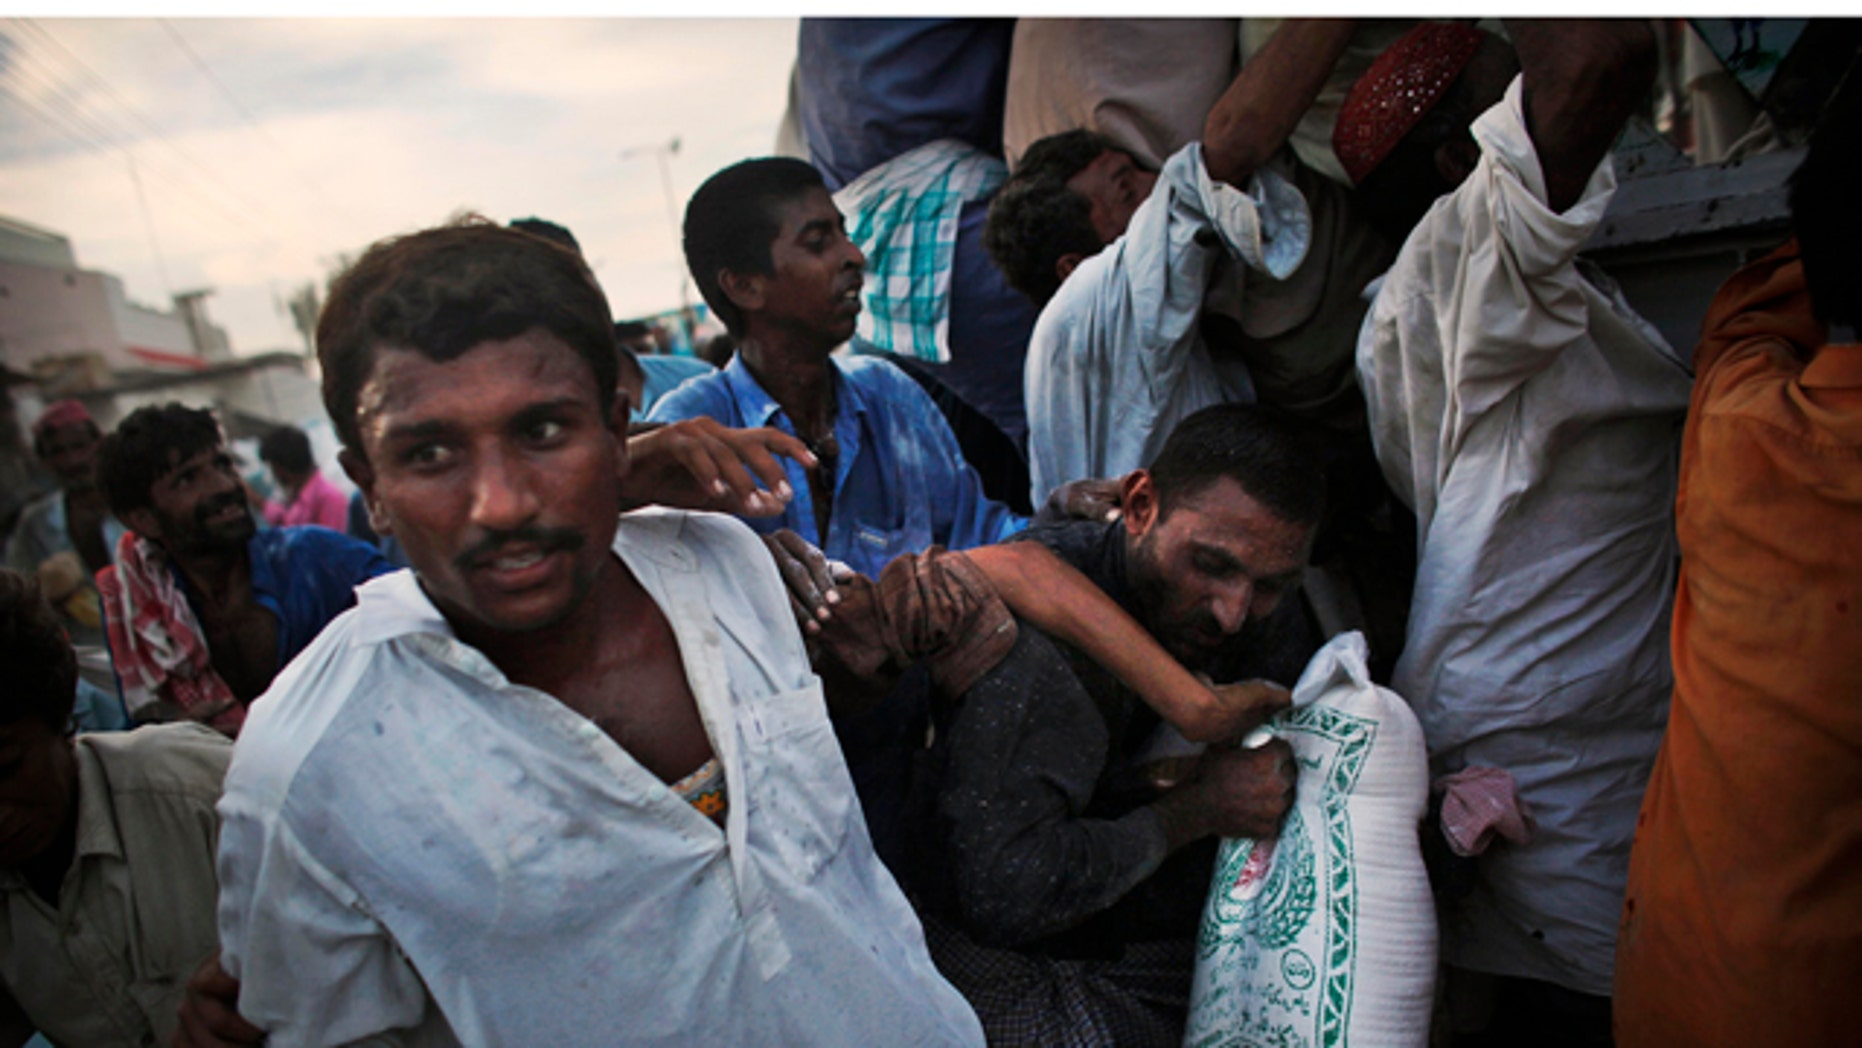 Aug. 17: Pakistanis displaced by flooding grab a bag of food aid as they crowd during a distribution on the road near the flood line outside of Sukkur, in Sindh province, southern Pakistan.